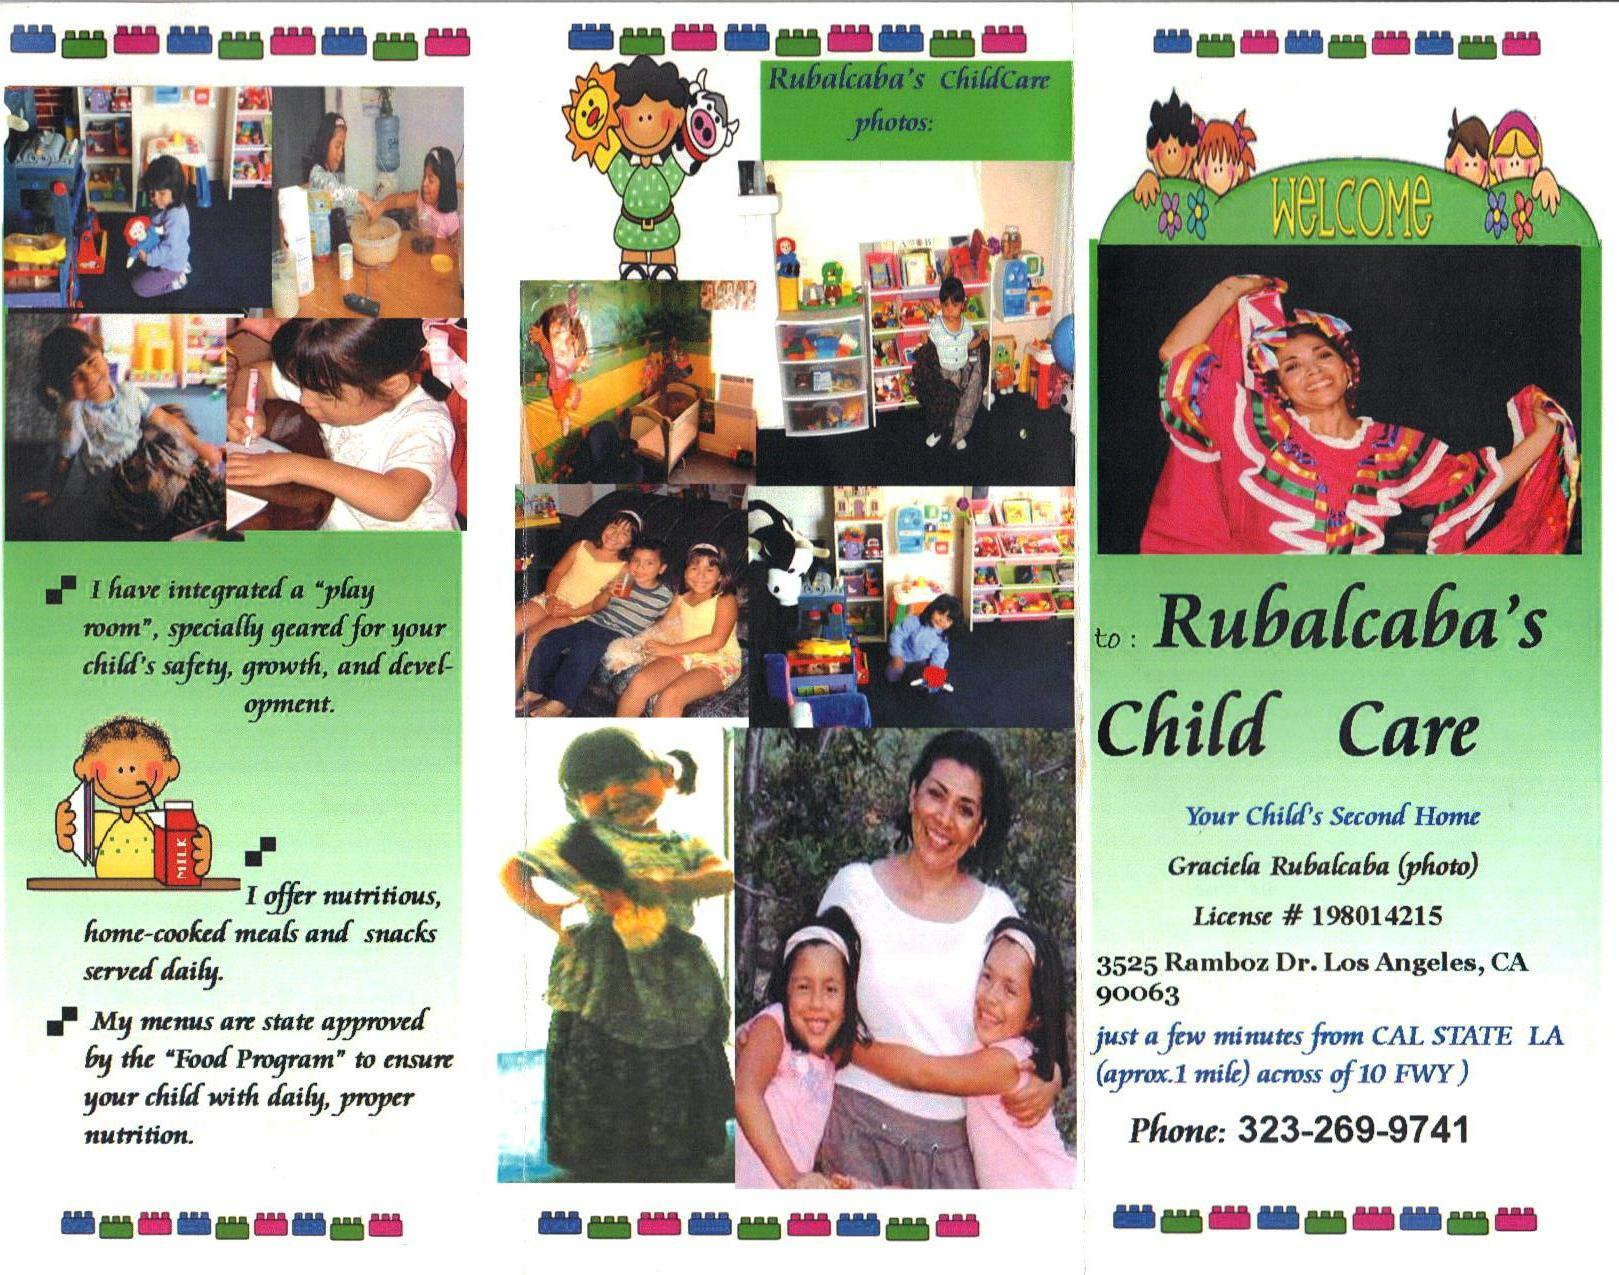 rubalcaba family child care los angeles ca family day care home rubalcaba family child care photos click to enlarge